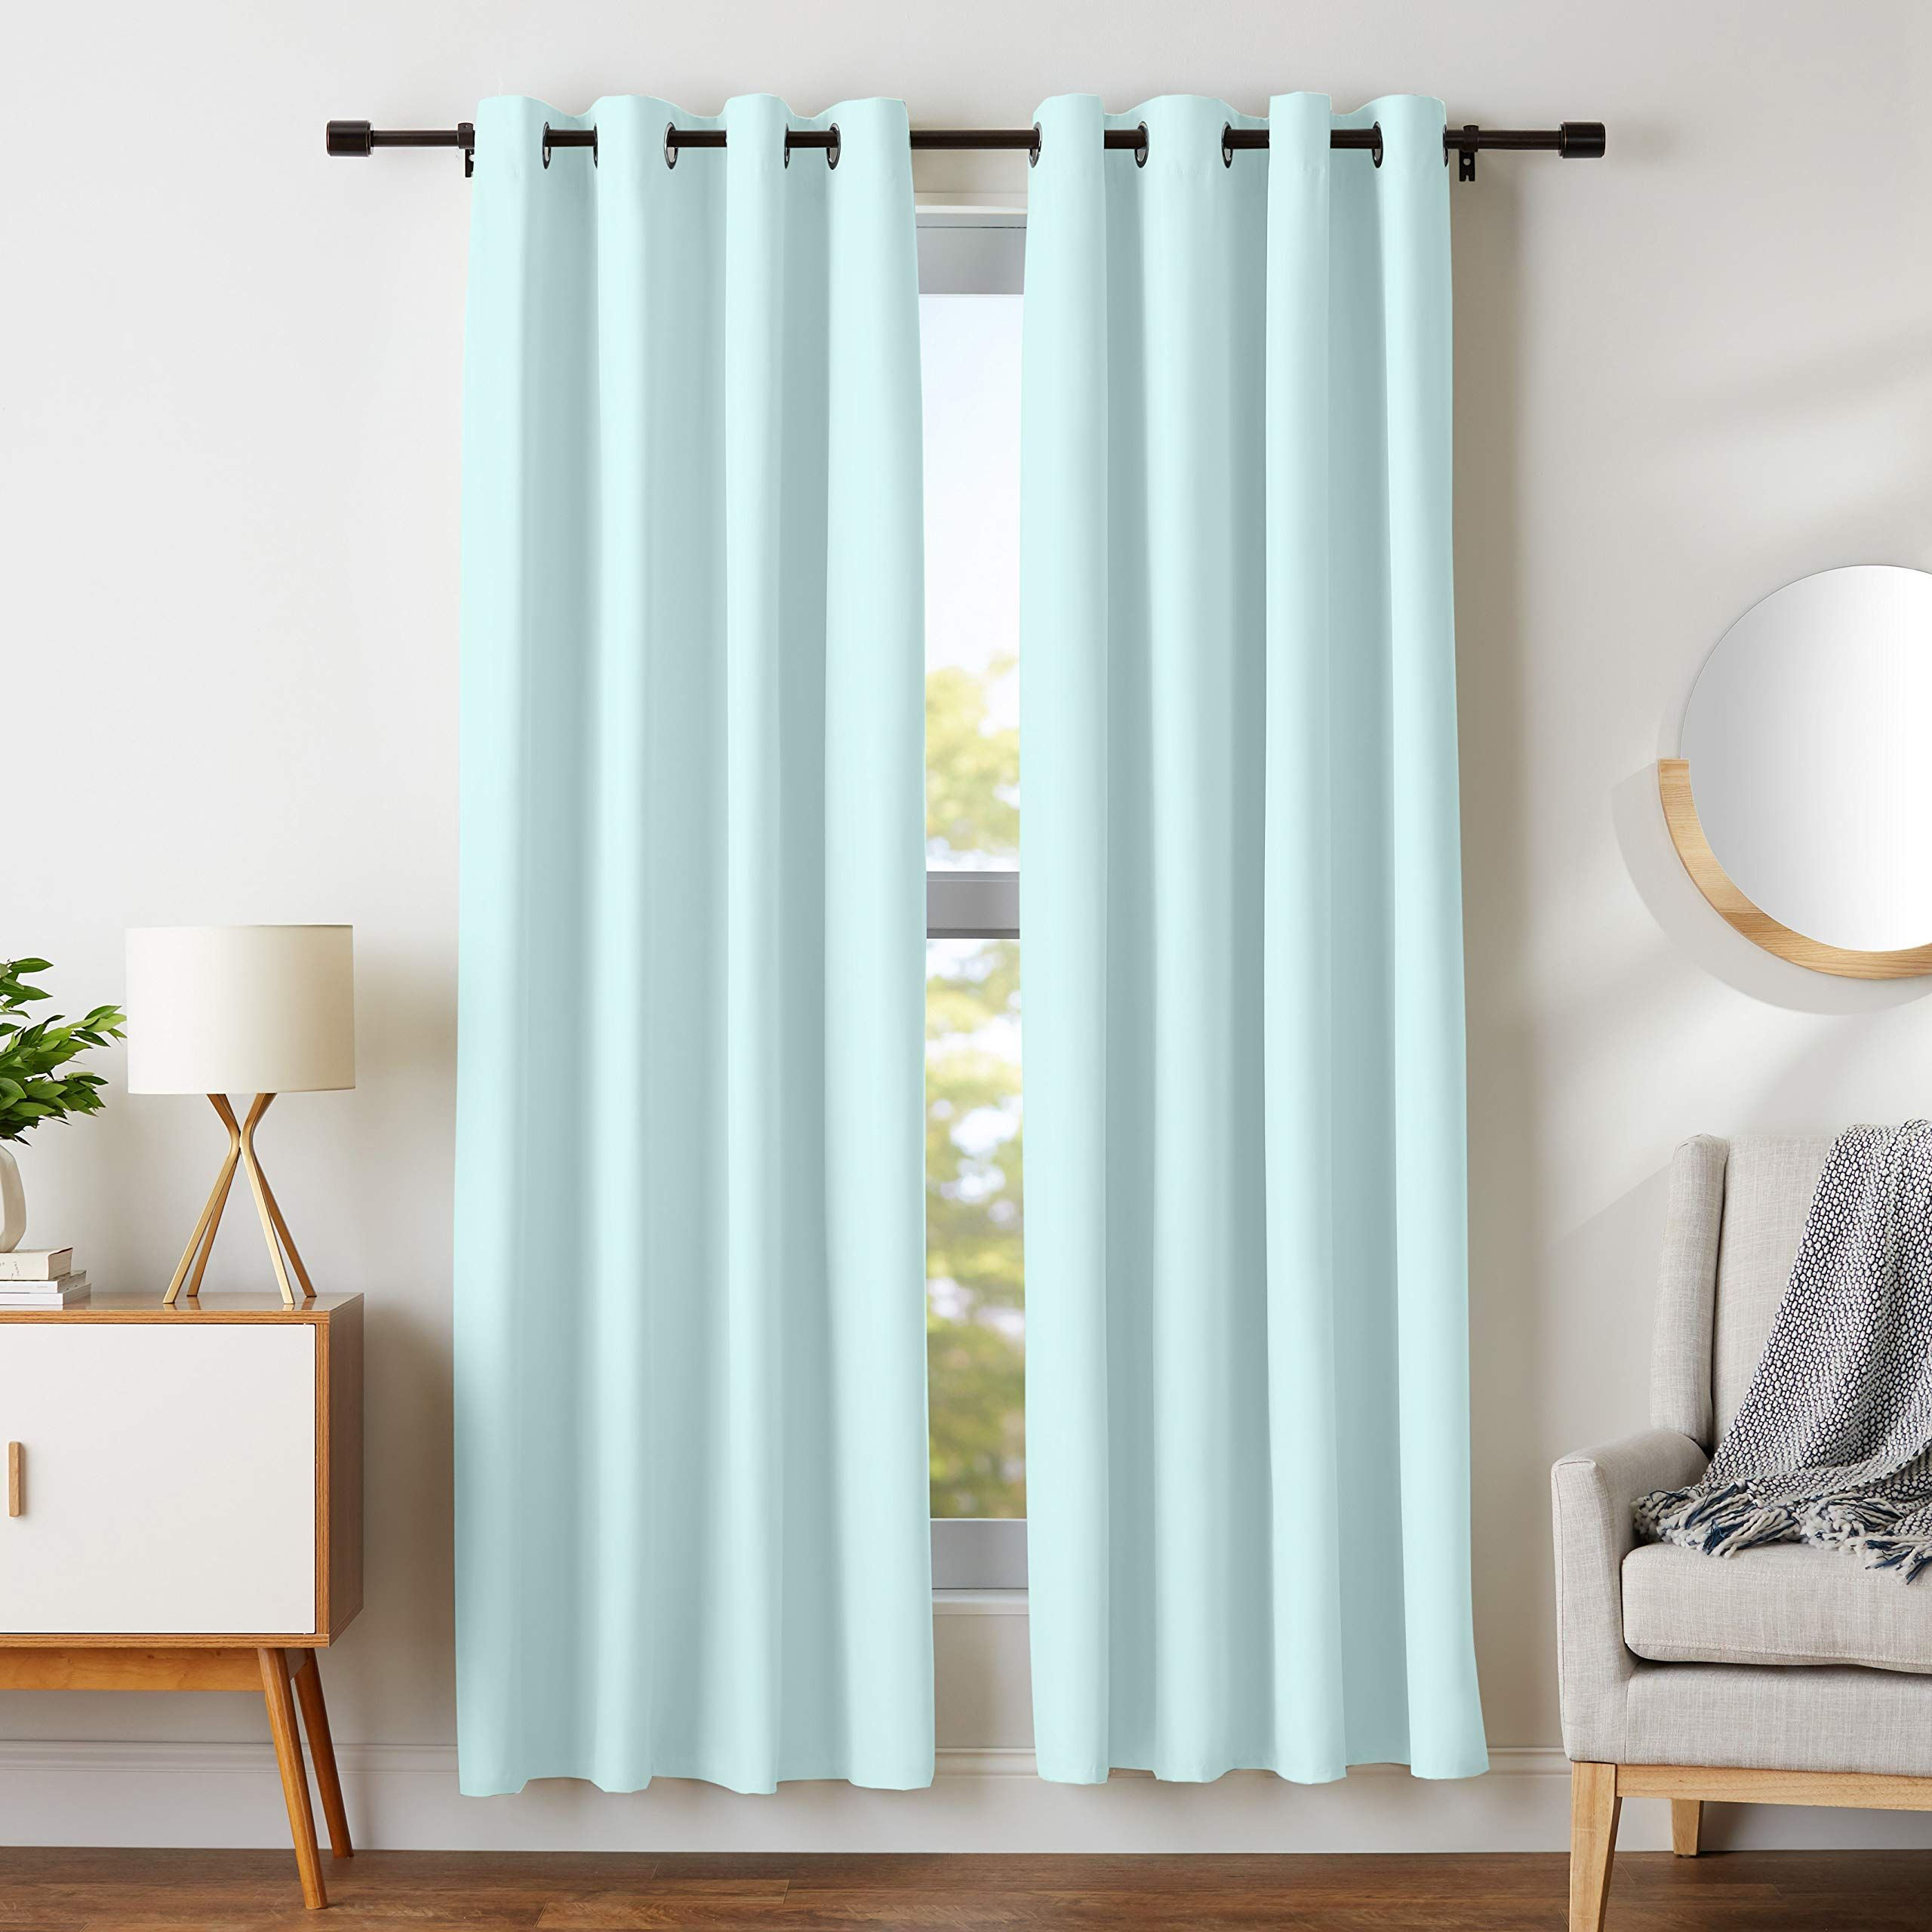 Amazonbasics Room Darkening Blackout Window Curtains With Grommets